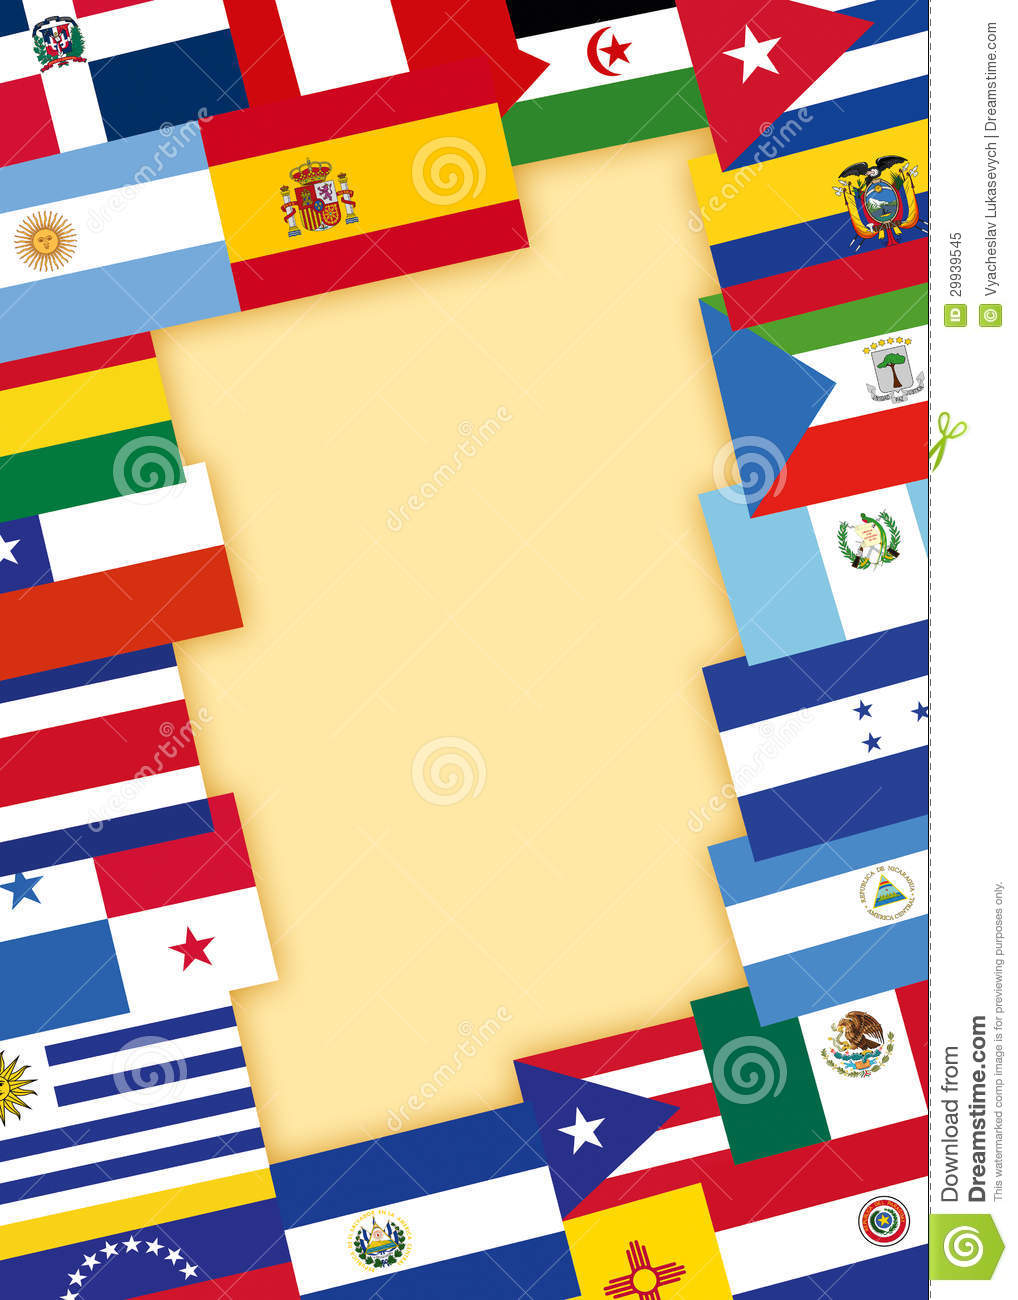 Spanish Speaking Countries Flags Royalty Free Stock Photo - Image ...